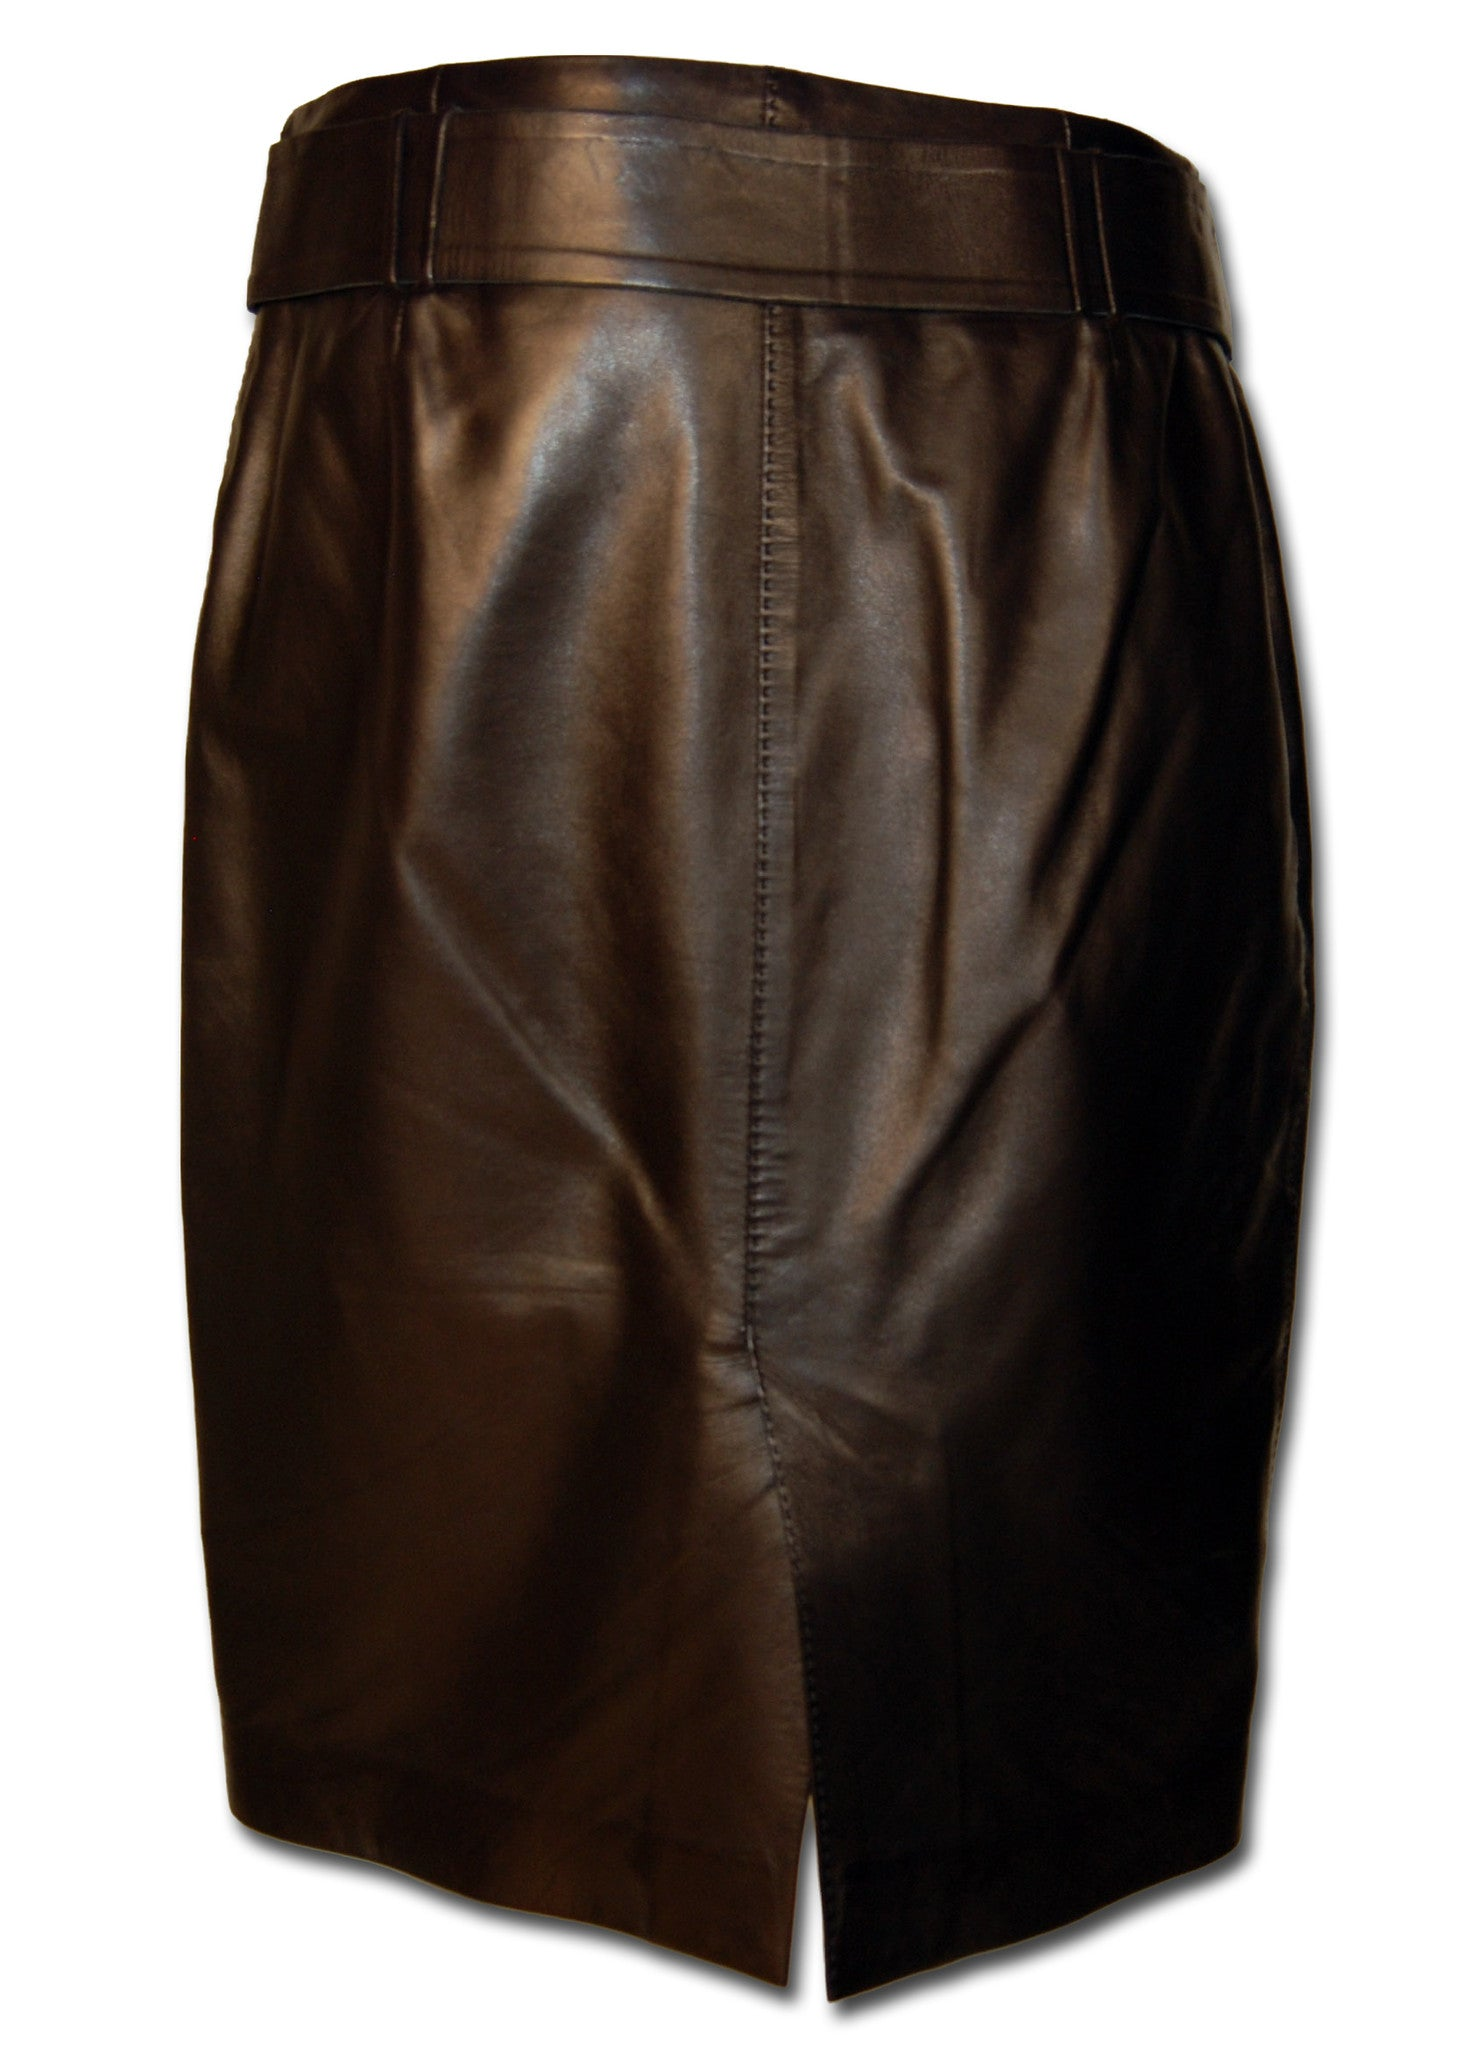 f4558b3fc2ca5e ... Tom Ford Gucci Leather Skirt - refashioner - 3 ...